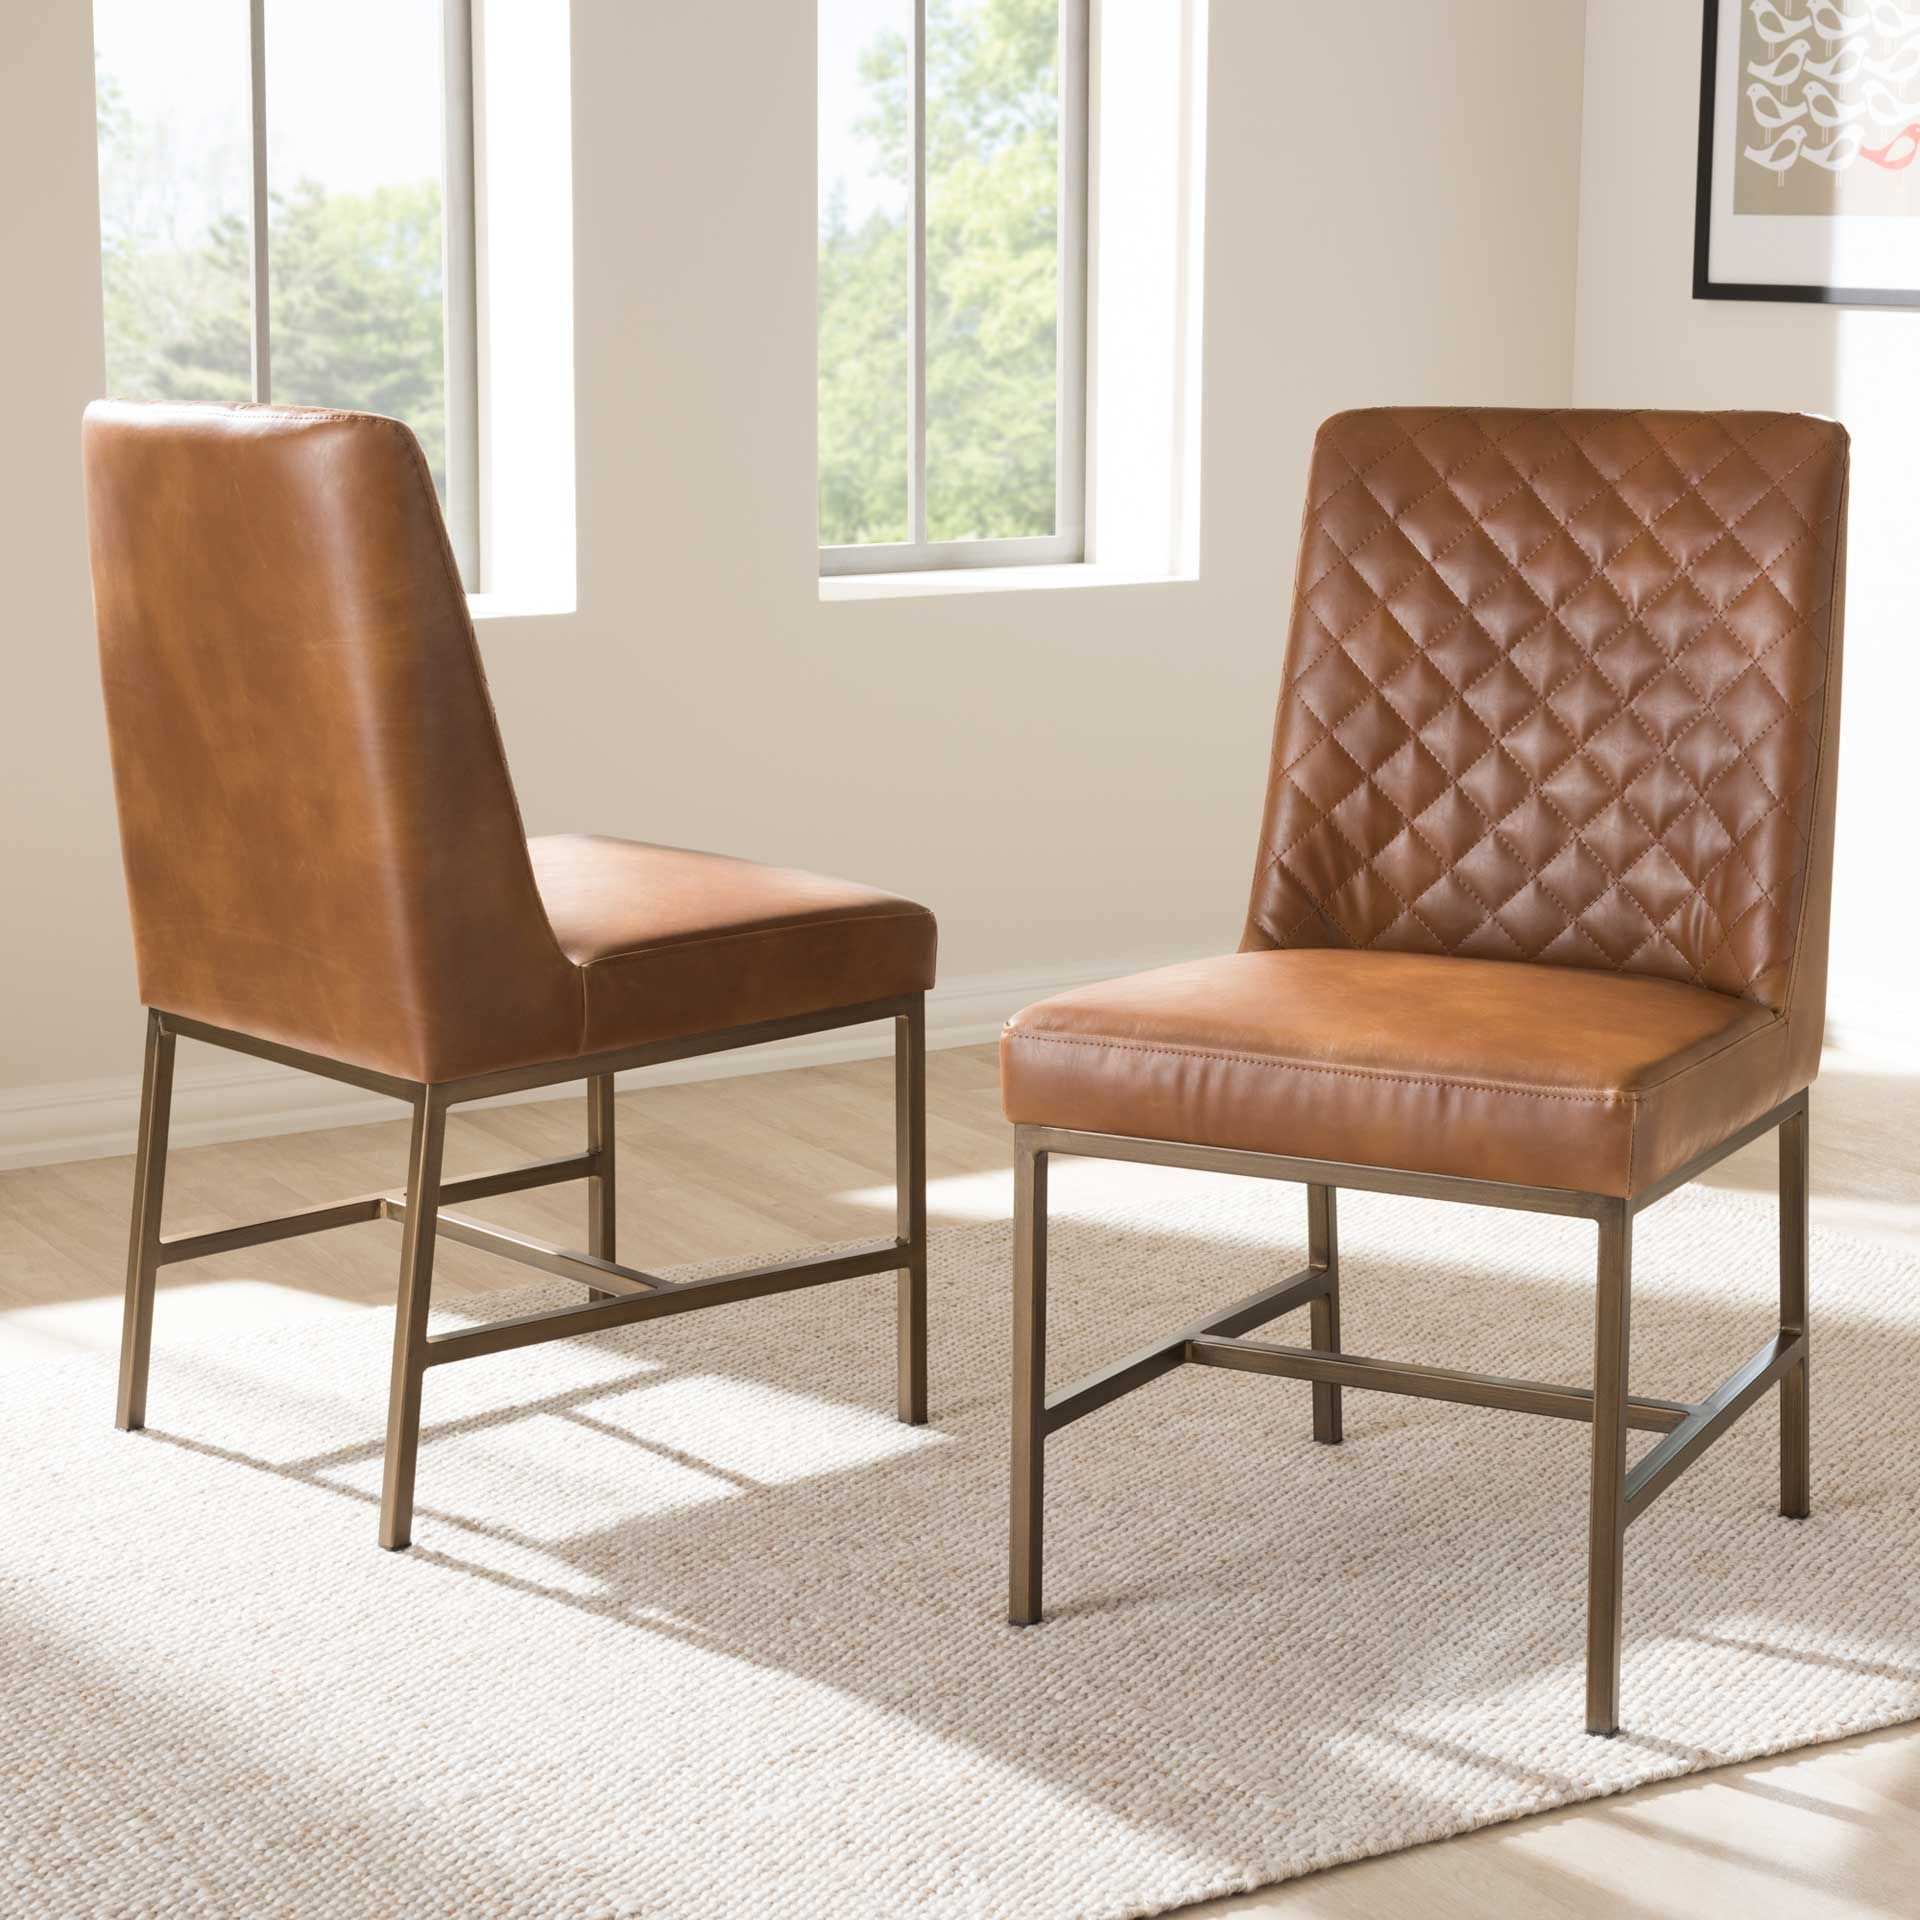 Mabelle Faux Leather Dining Chair Brown Set Of 2 In 2021 Faux Leather Dining Chairs Leather Dining Chairs Leather Dining Room Chairs